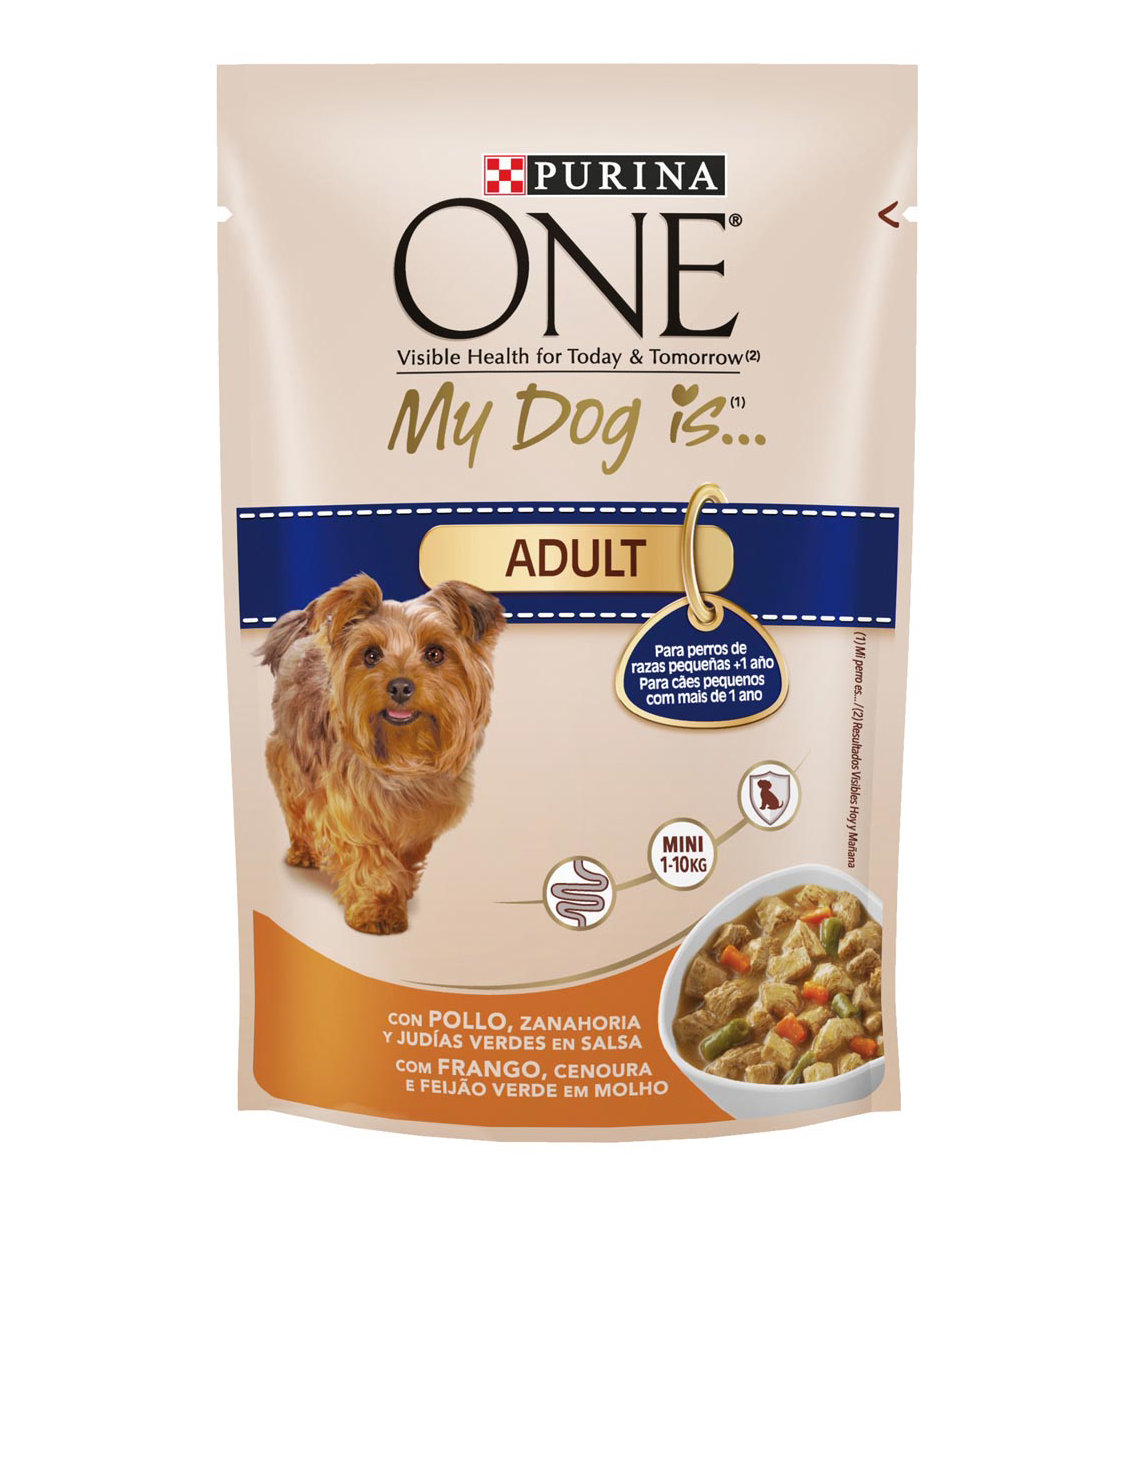 Purina One Mini my dog is adult alimento perro raza mini con pollo verduras de 100g. en bolsa